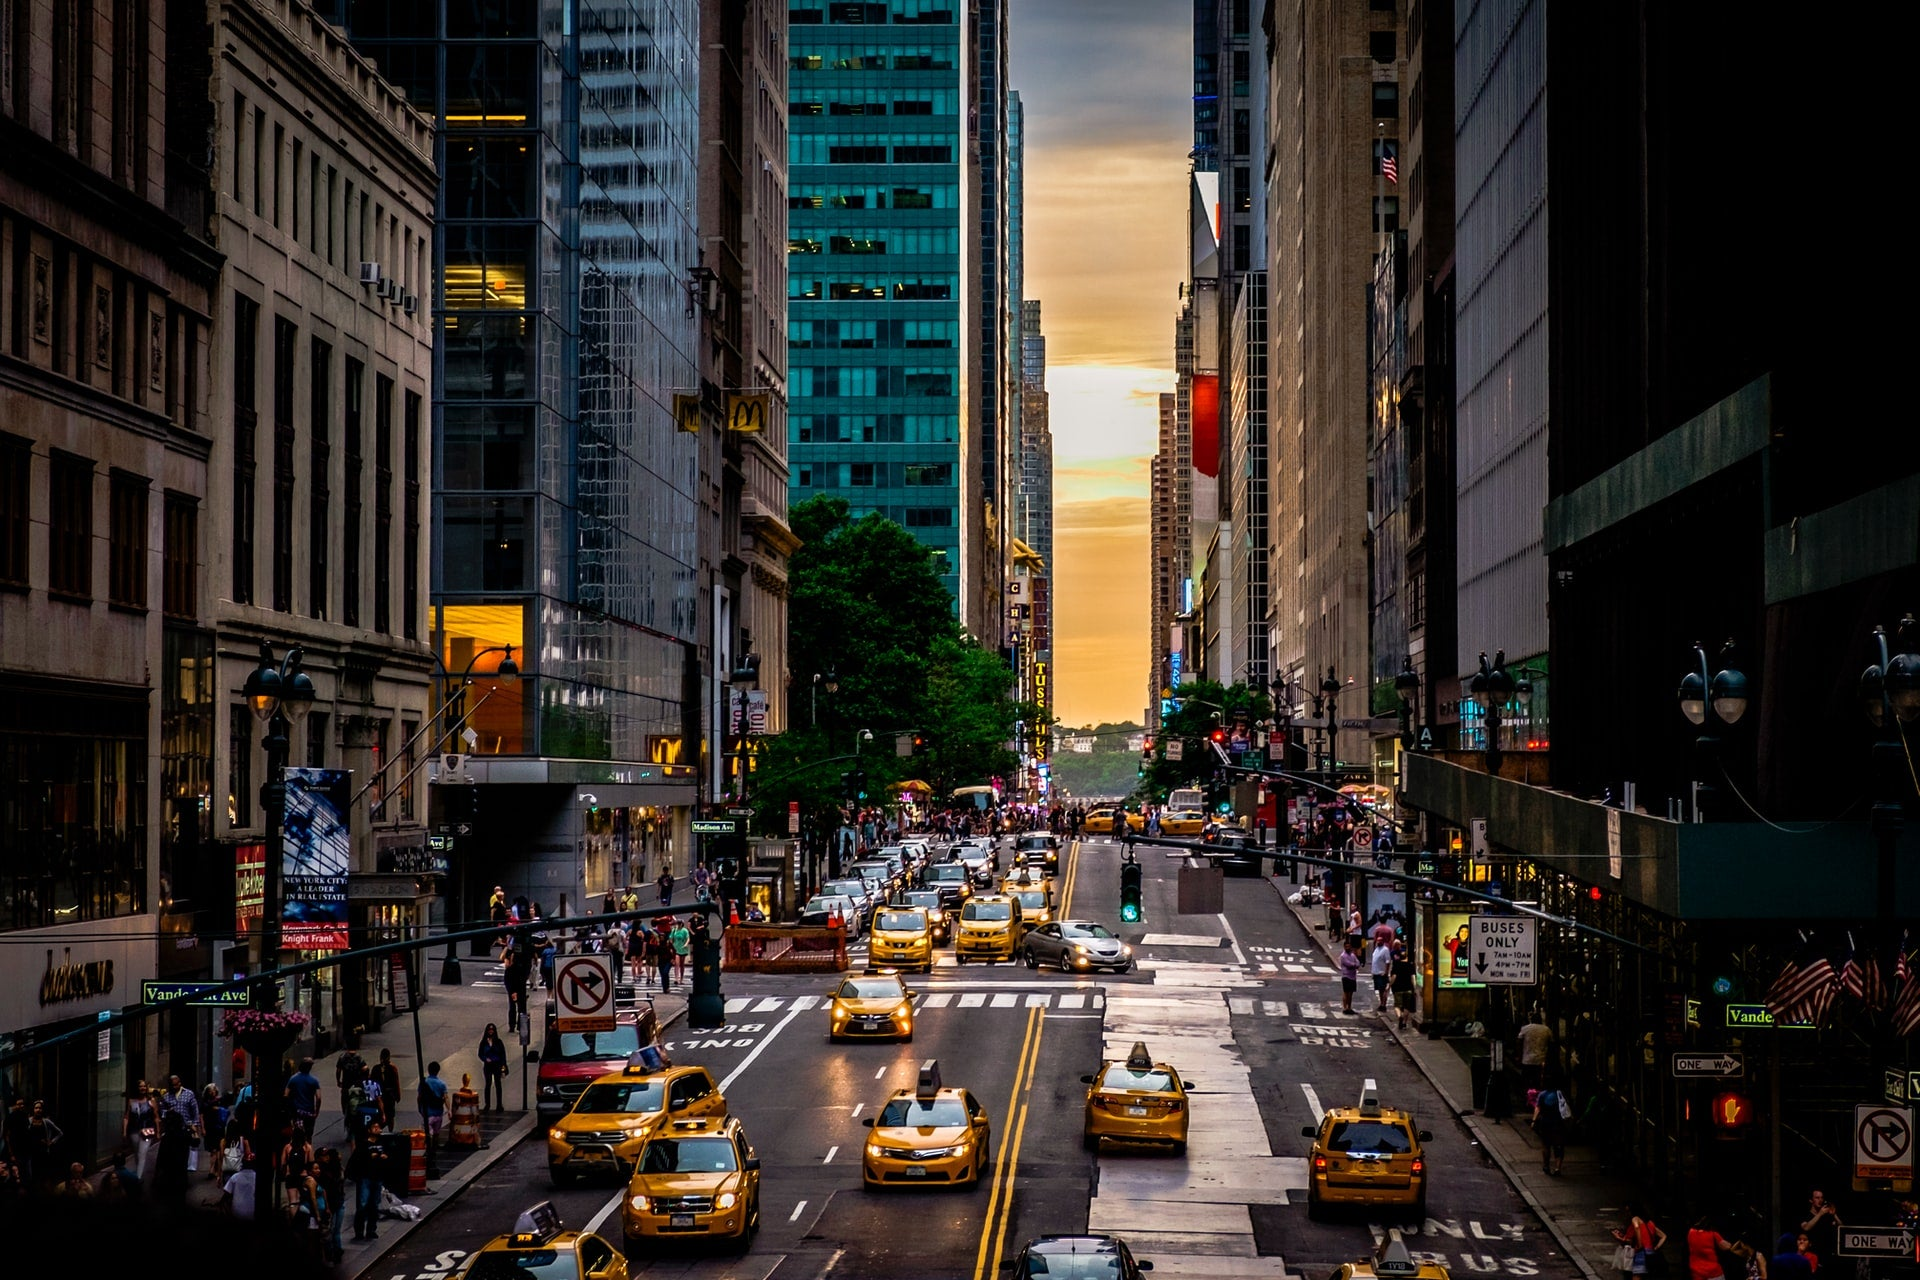 Taxis and cars driving down a New York City street